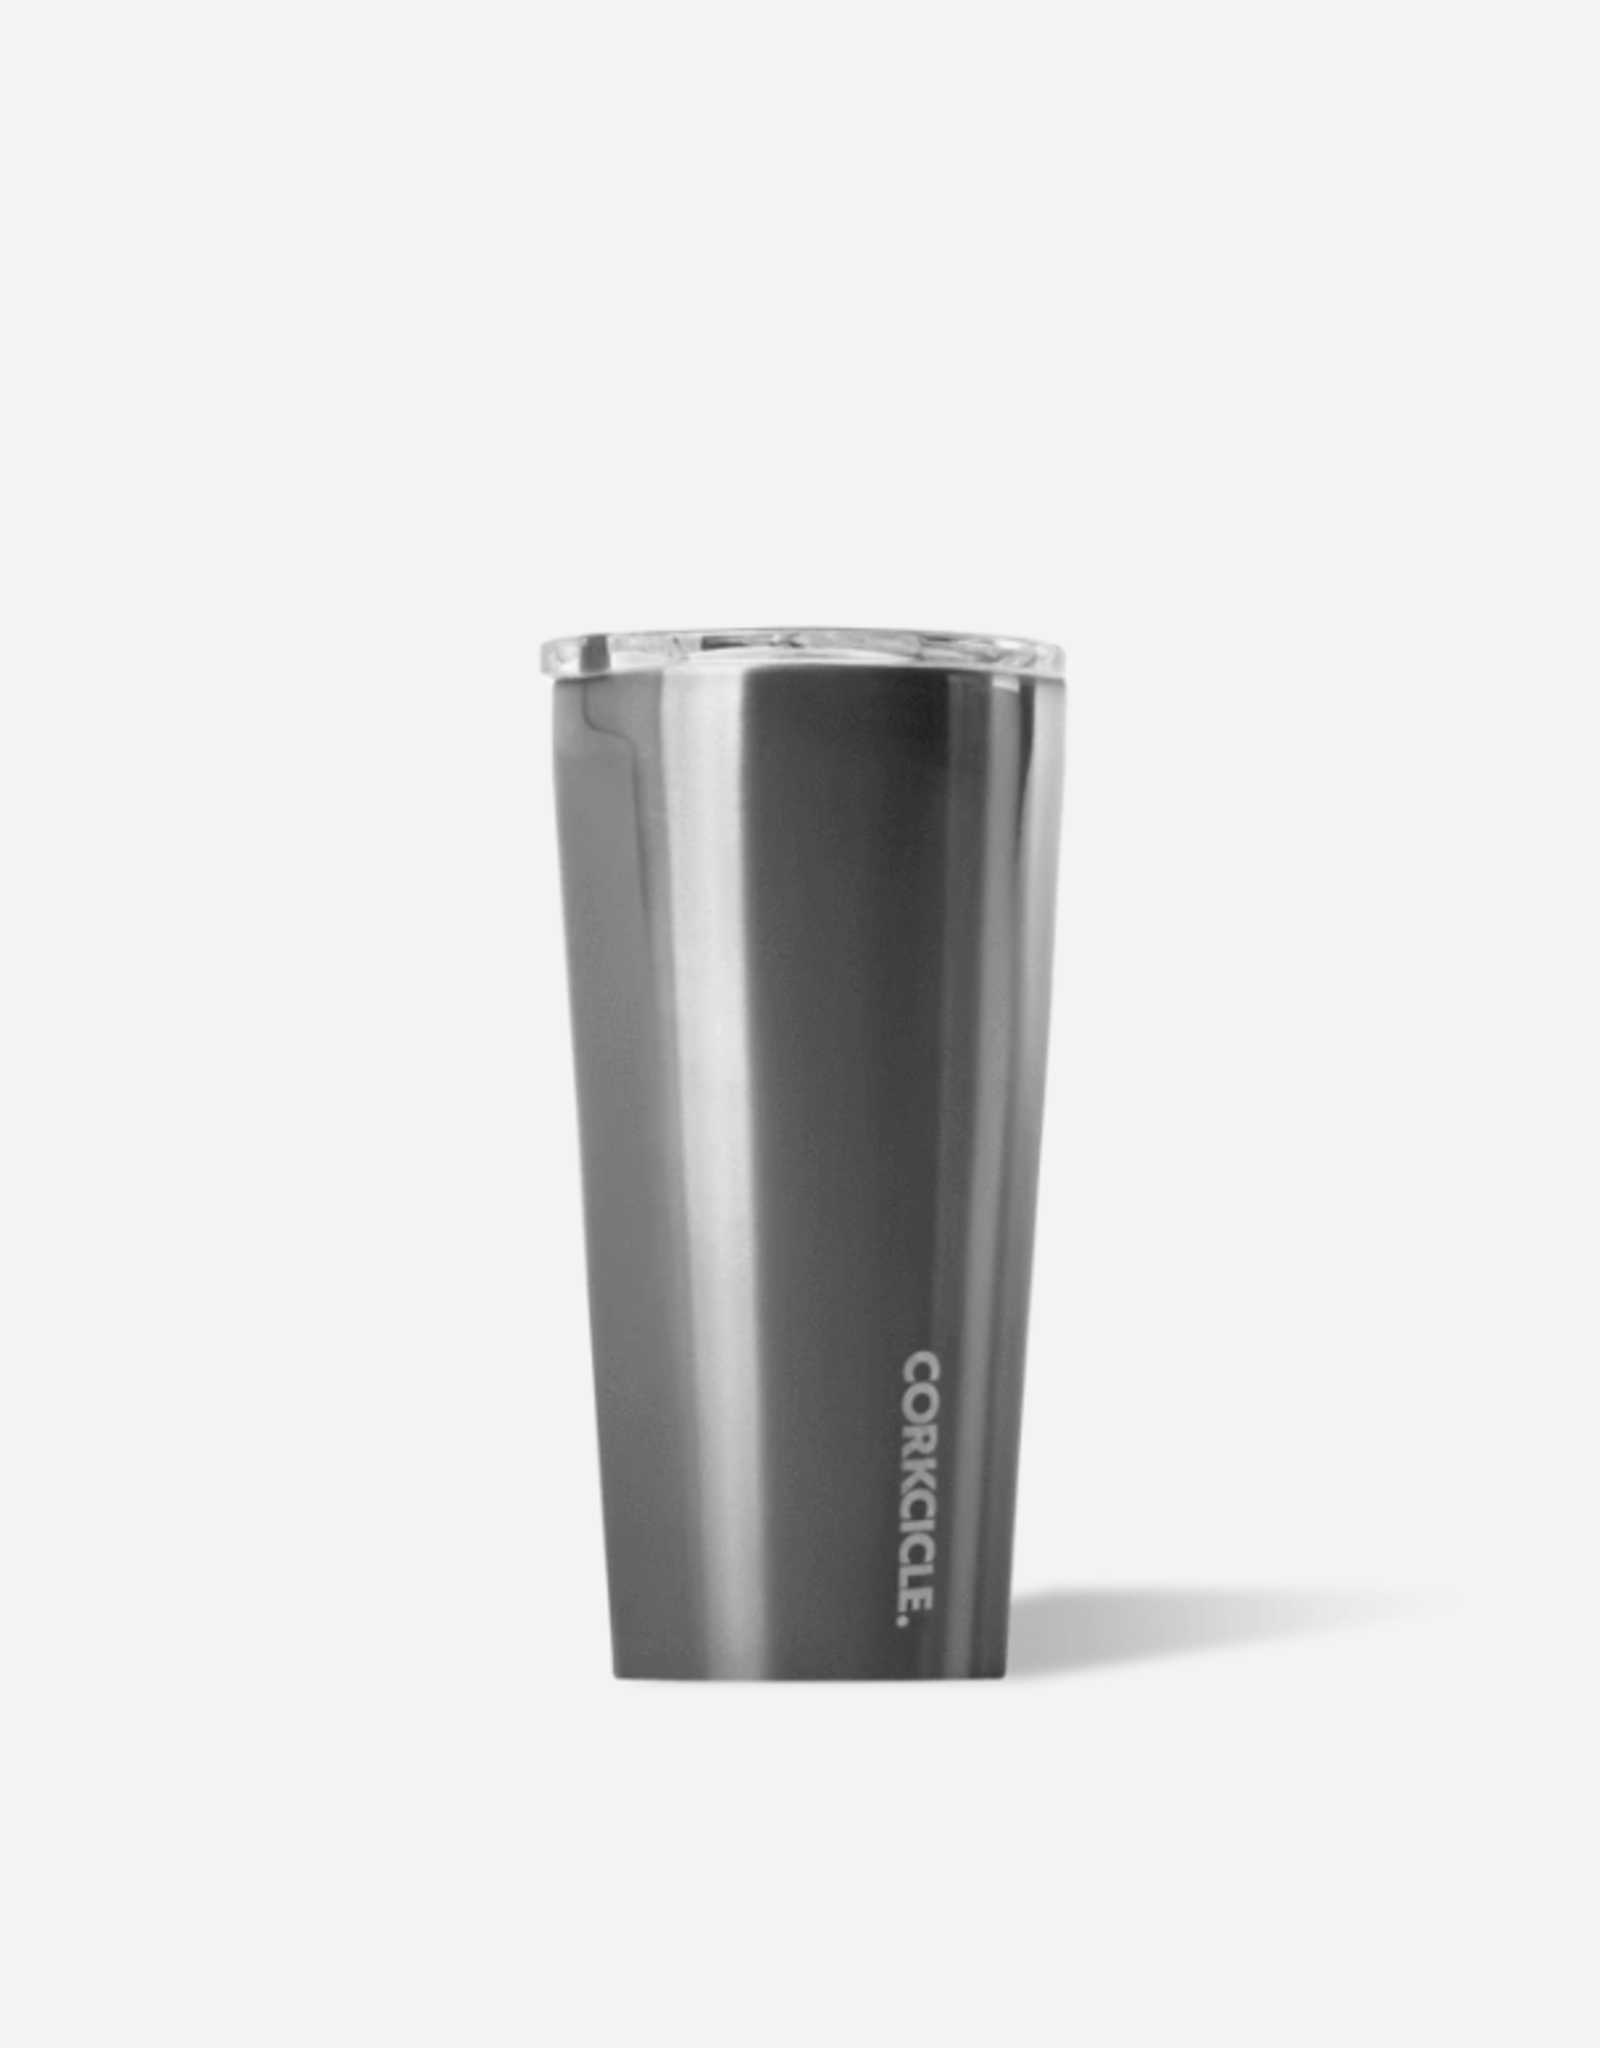 Corkcicle Corkcicle Tumbler 16oz, Gunmetal